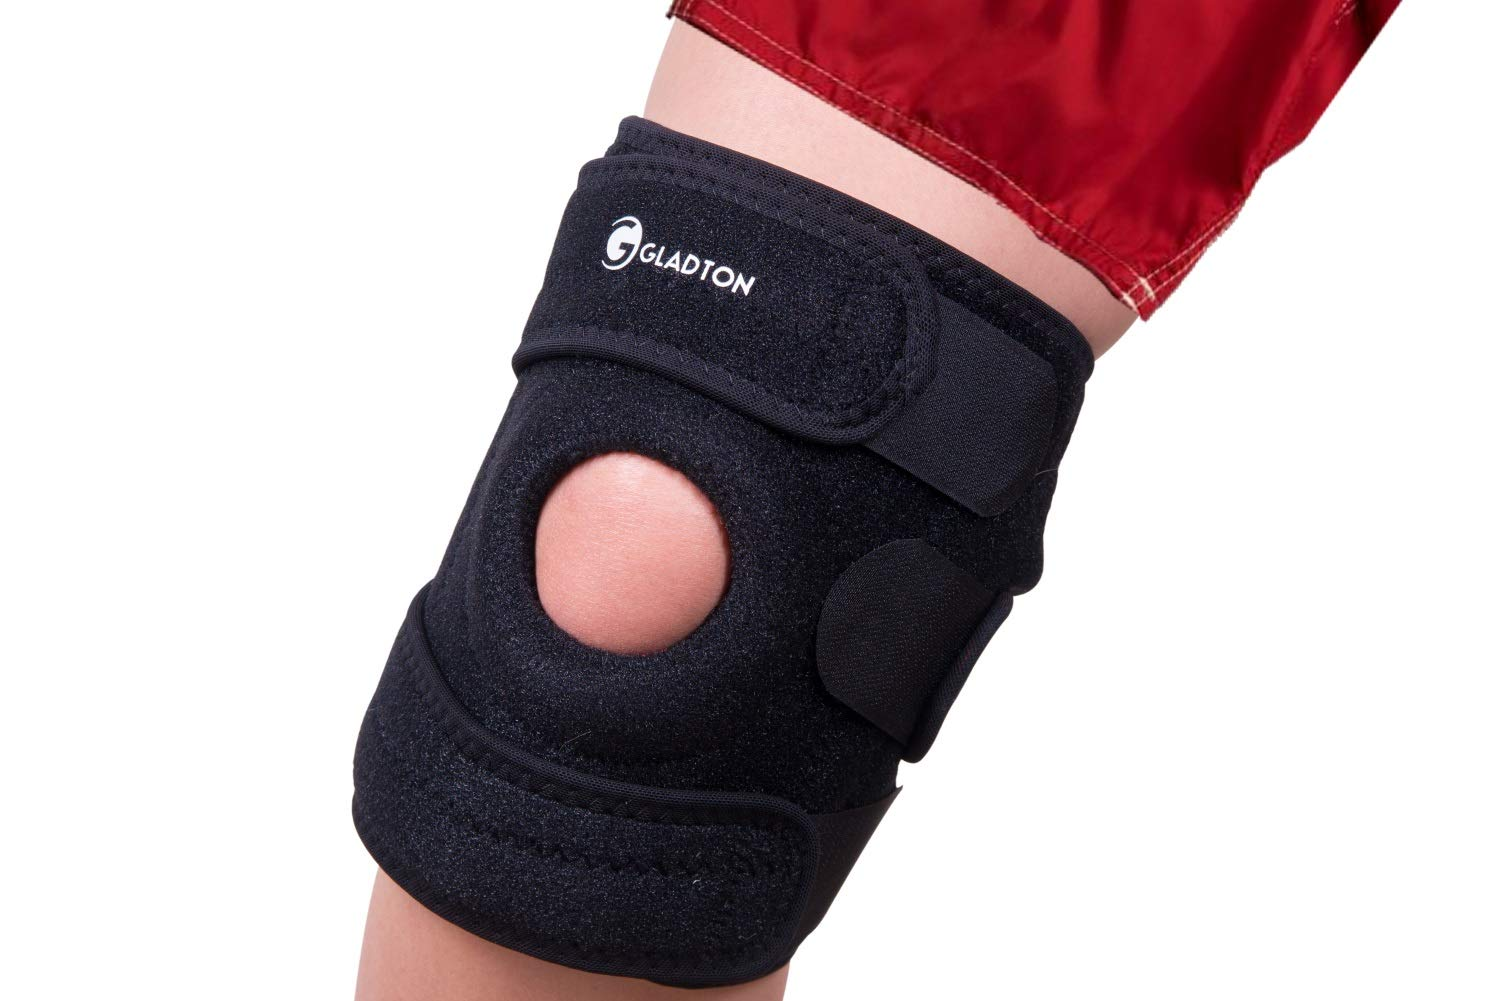 Gladton Large XL XXL XXXL 2XL 3XL Knee Brace Support for Running Meniscus Tear Arthritis ACL MCL Pain Sports. Open Patella Adjustable Stabilizers for Plus Size Big Large Legs Thighs Women Men. 4 Sizes by Gladton